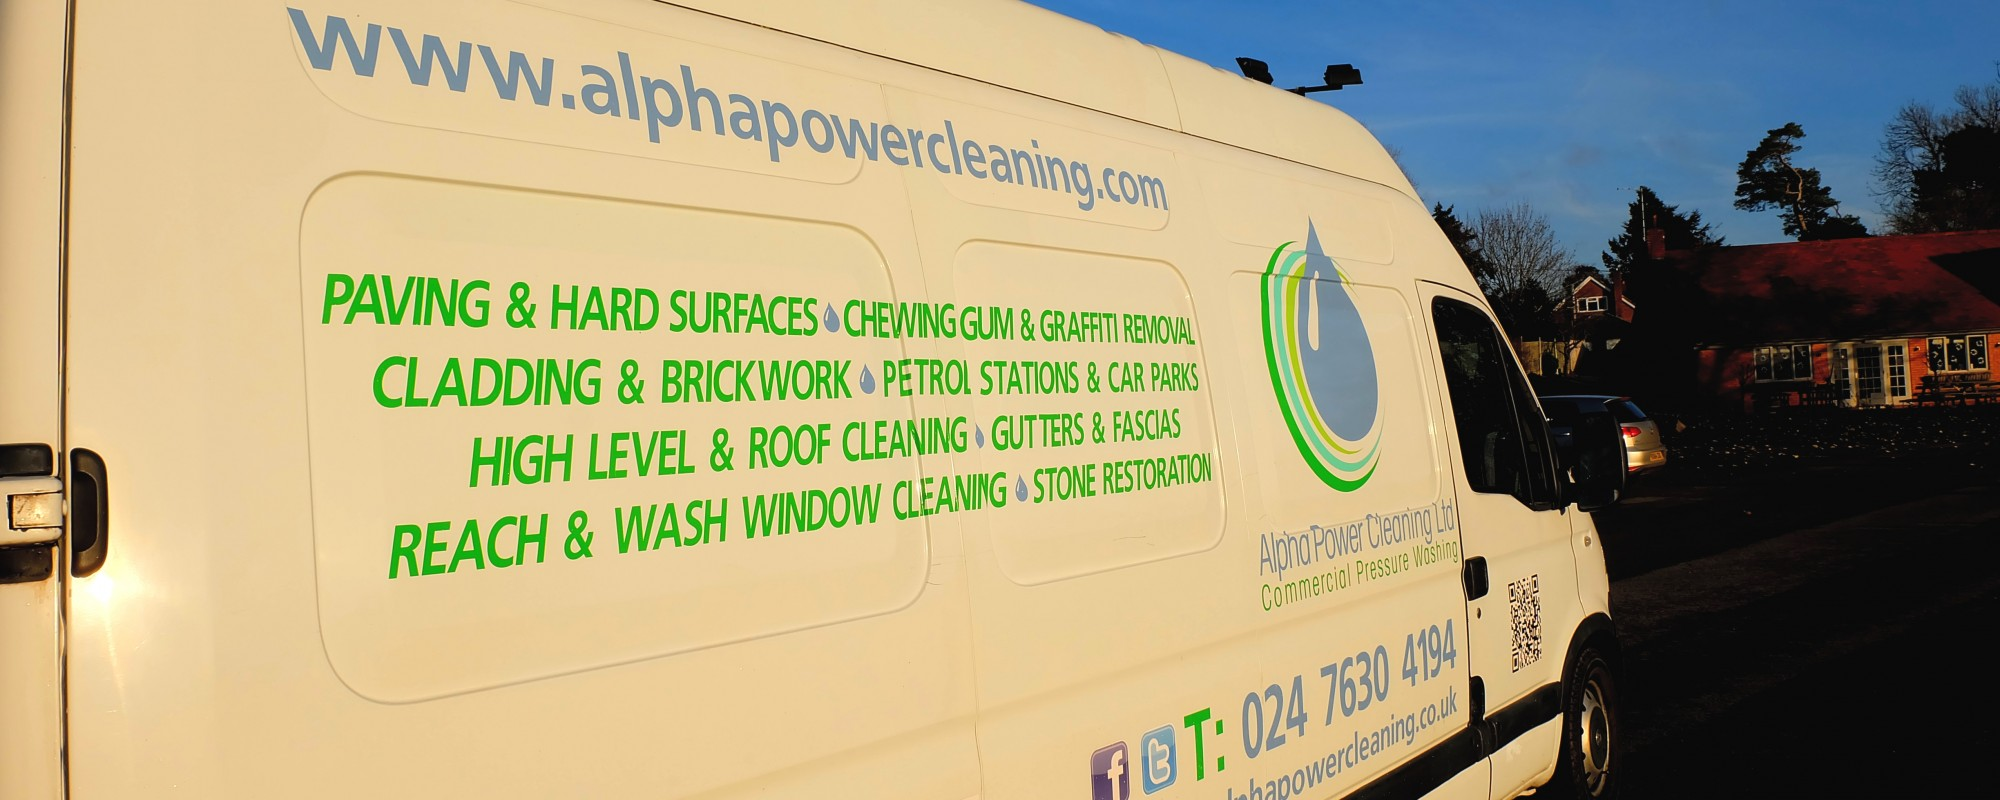 Alpha Power Cleaning, Window Cleaning, Jet Washing, Commercial Cleaning, Pressure Washing